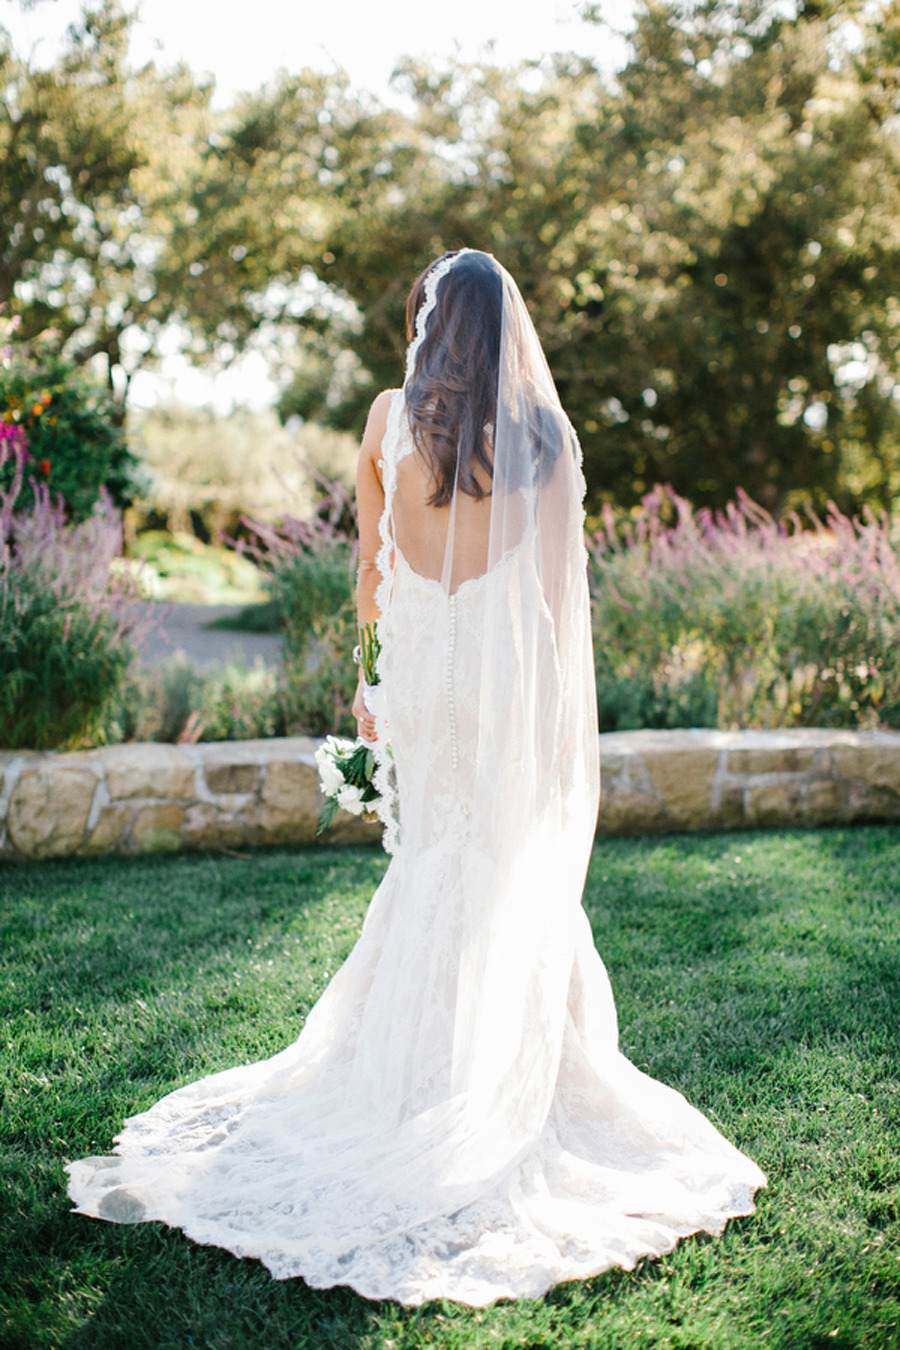 Ask the Right Questions When Buying a Used Dress